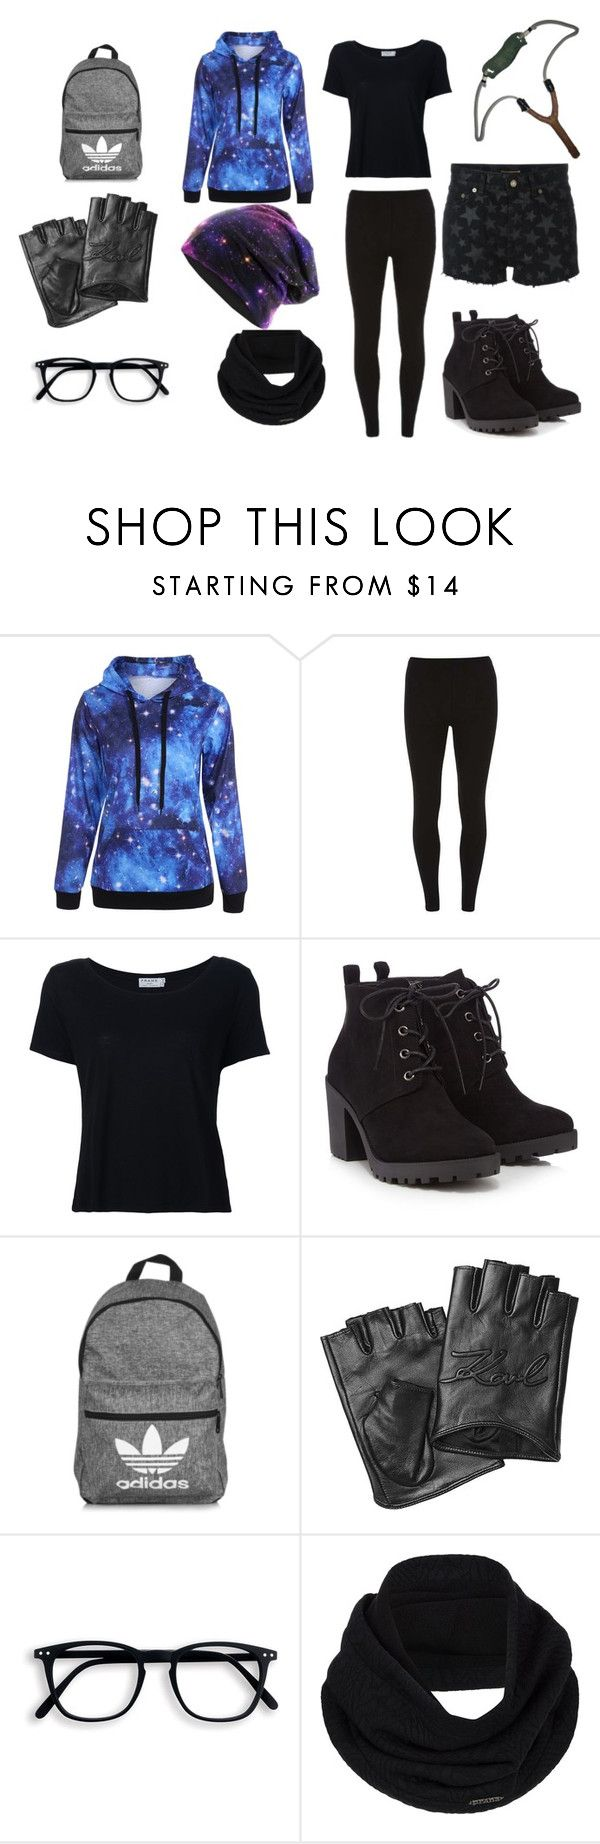 """""""1"""" by sabine-rainhart on Polyvore featuring Dorothy Perkins, Frame, Red Herring, adidas, Karl Lagerfeld, prAna and Yves Saint Laurent"""